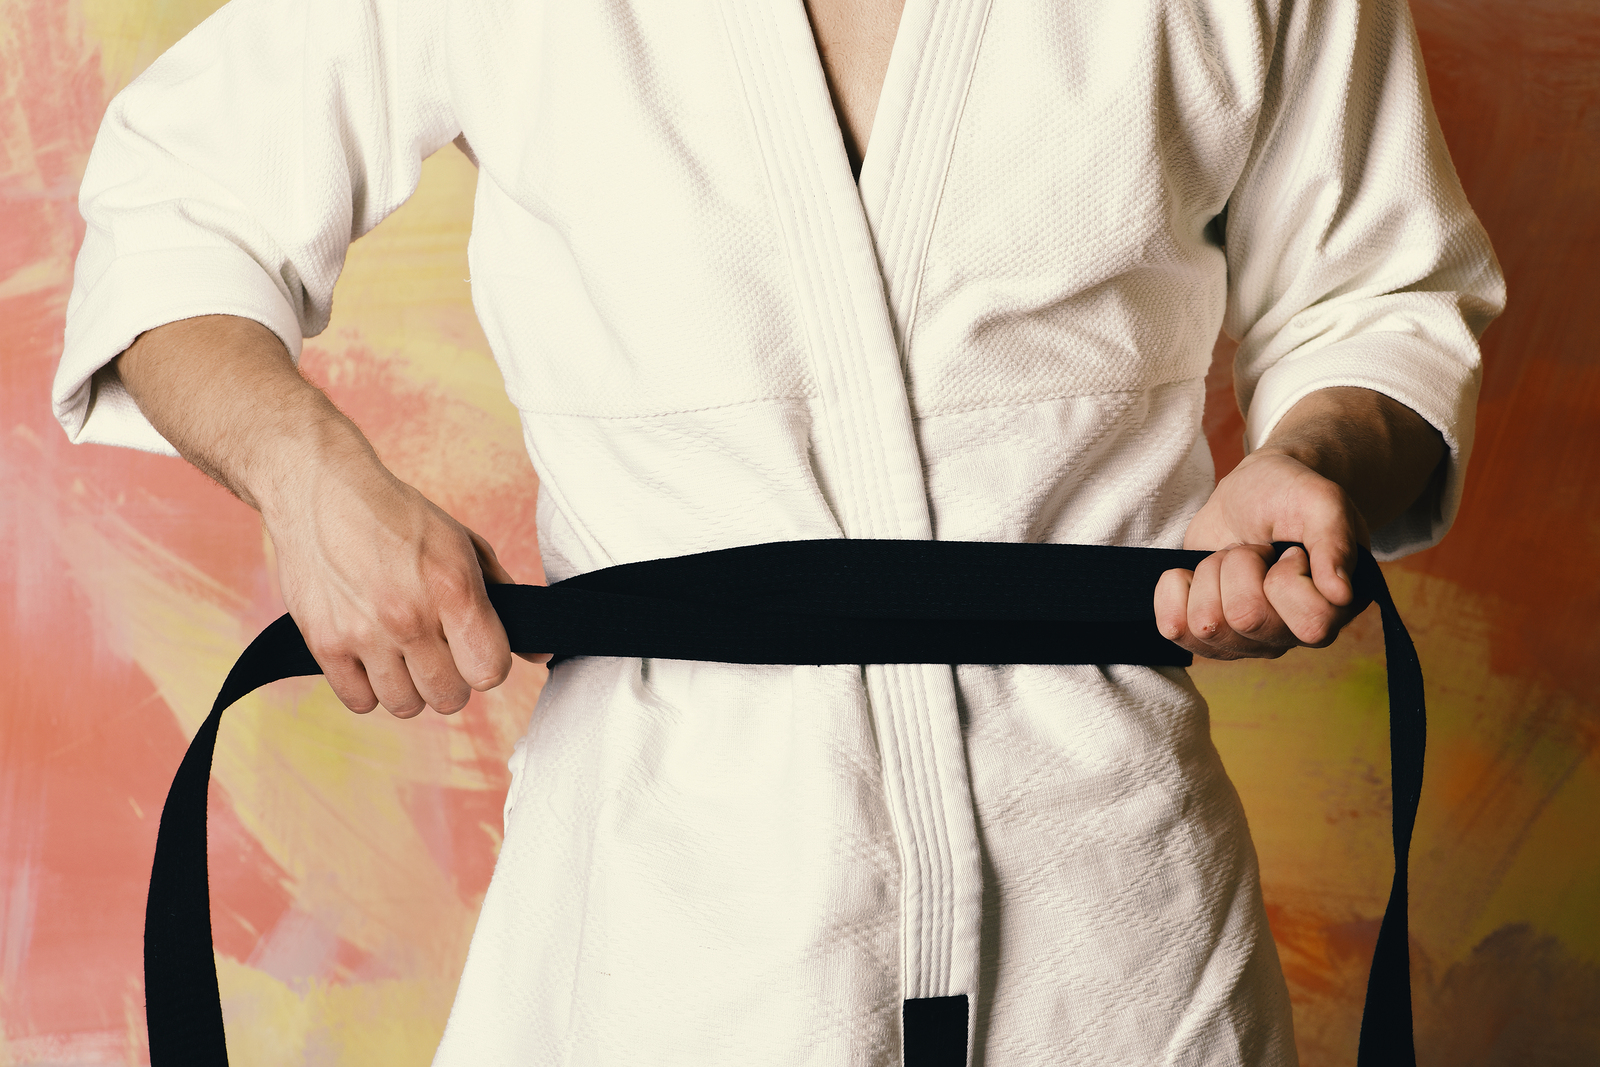 bigstock-Karate-Fighter-With-Fit-Strong-256312693.jpg